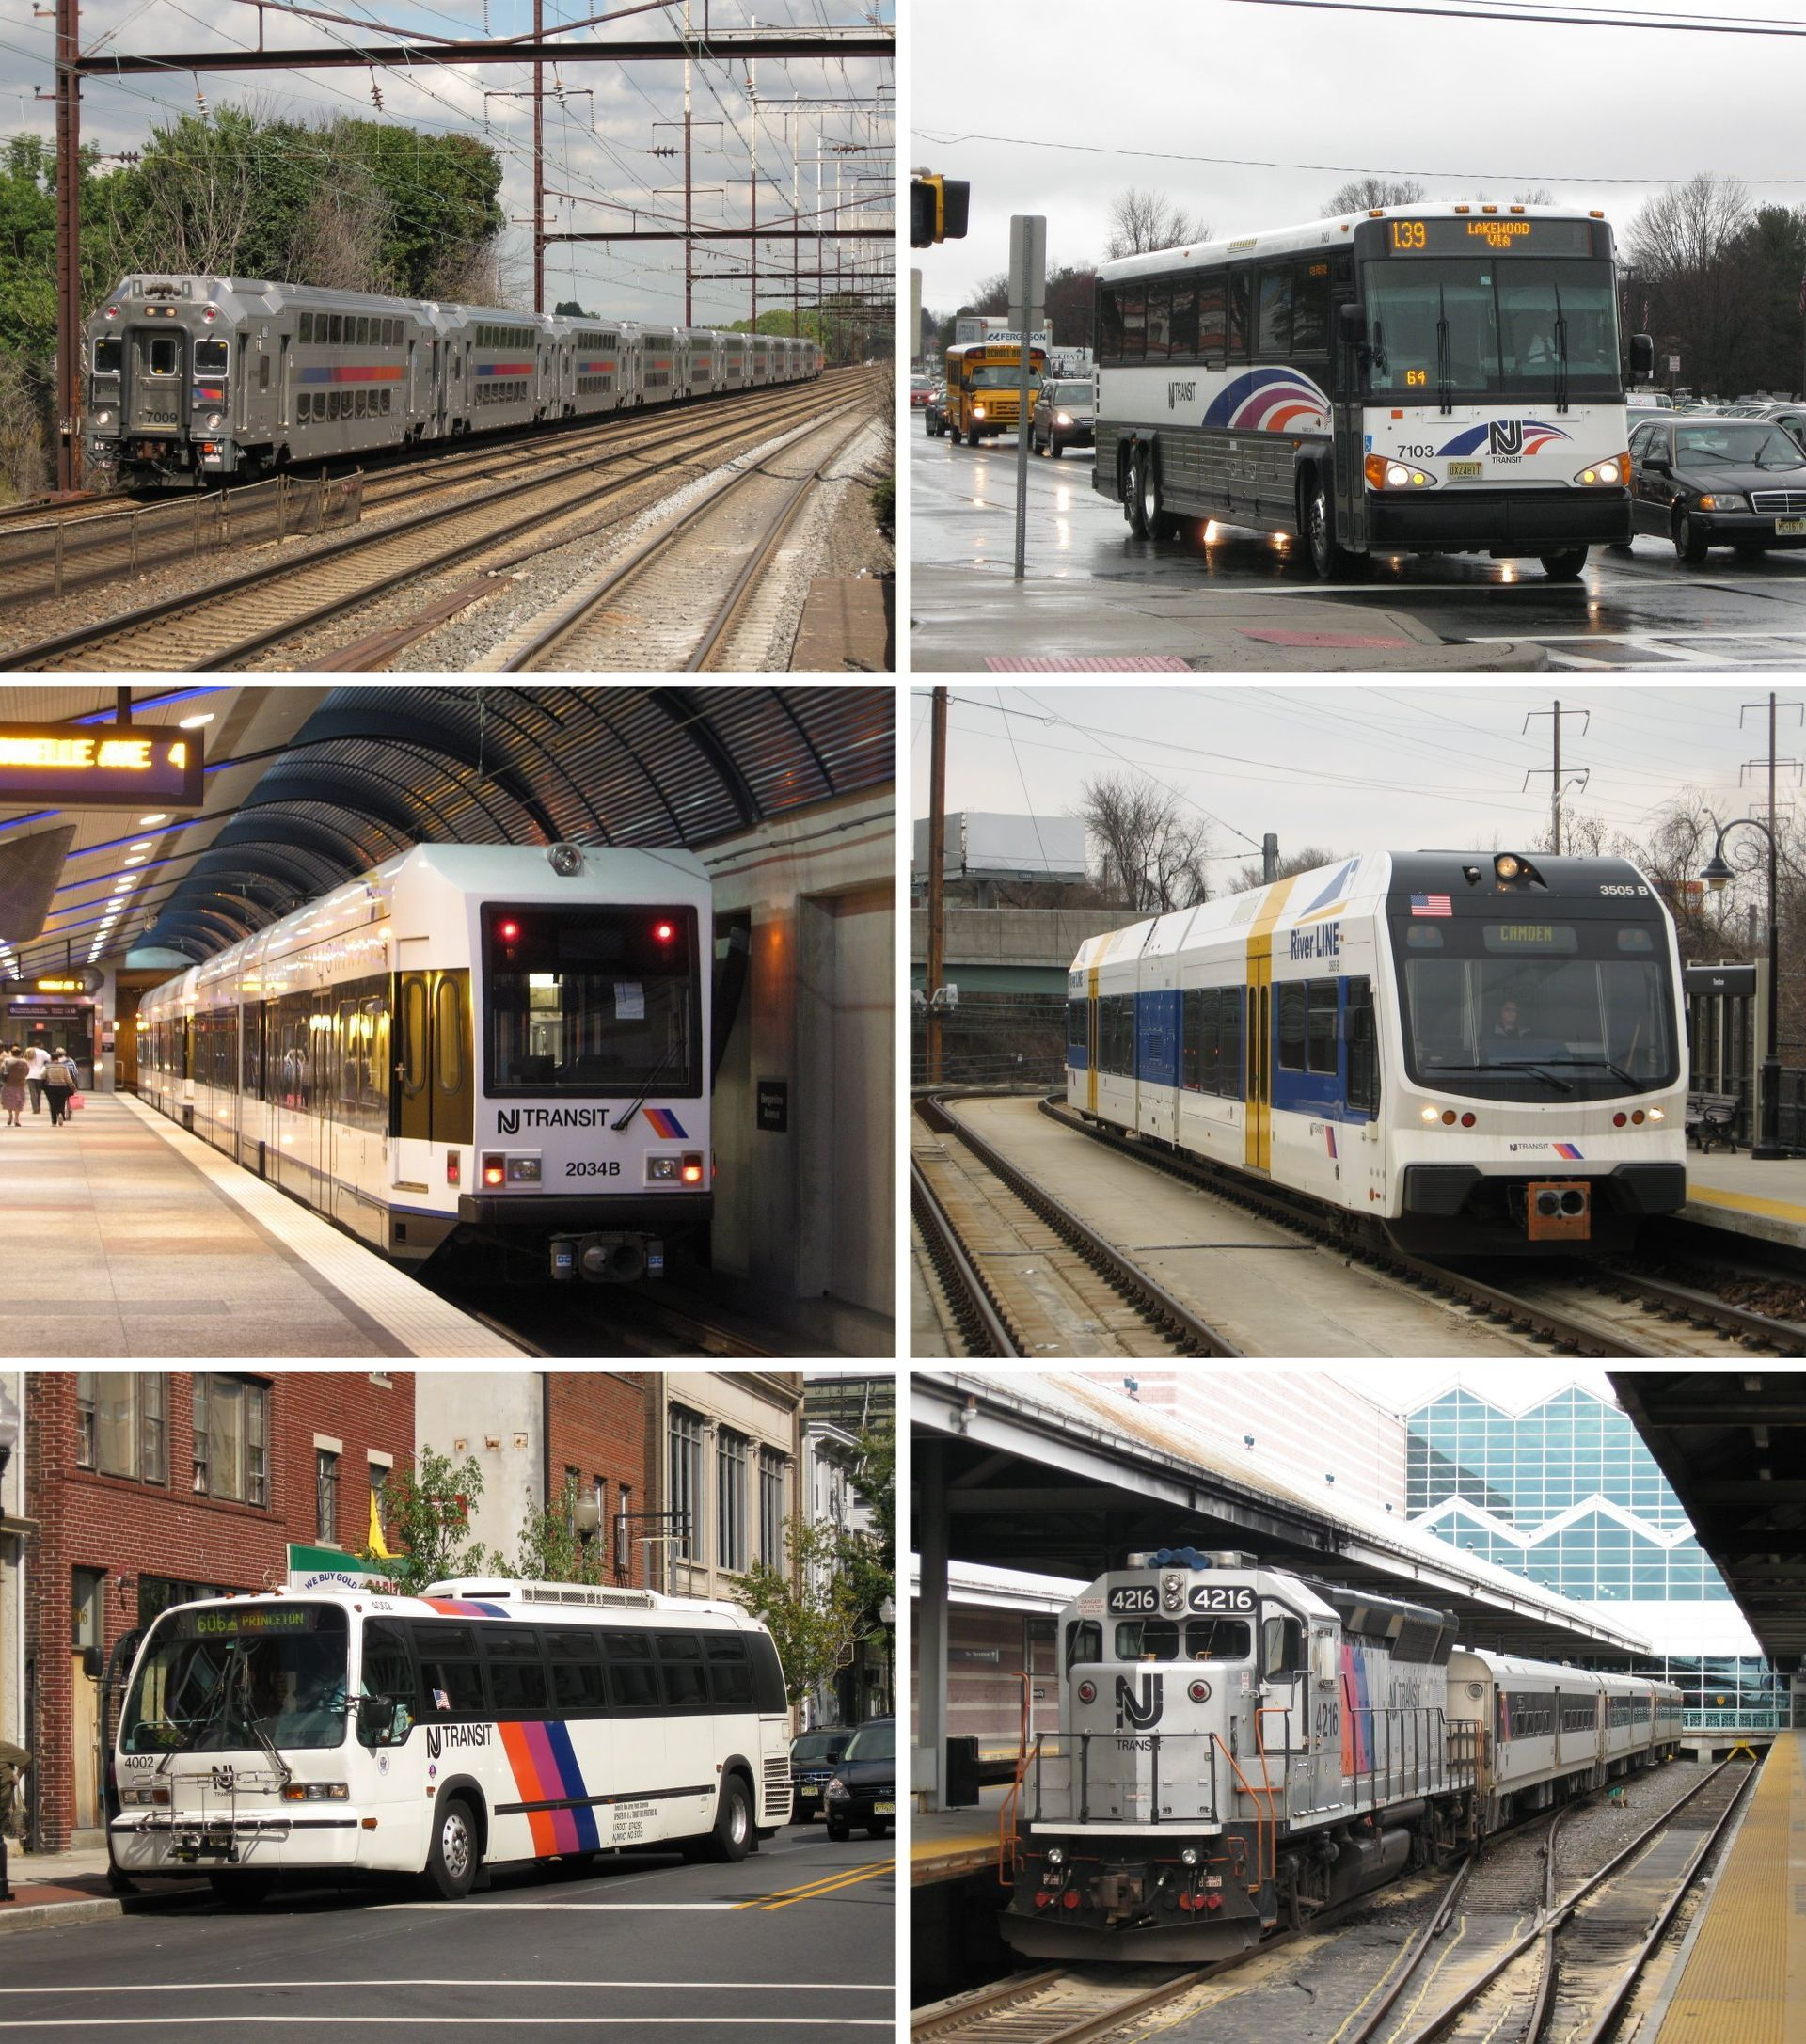 NJ Transit - Wikipedia